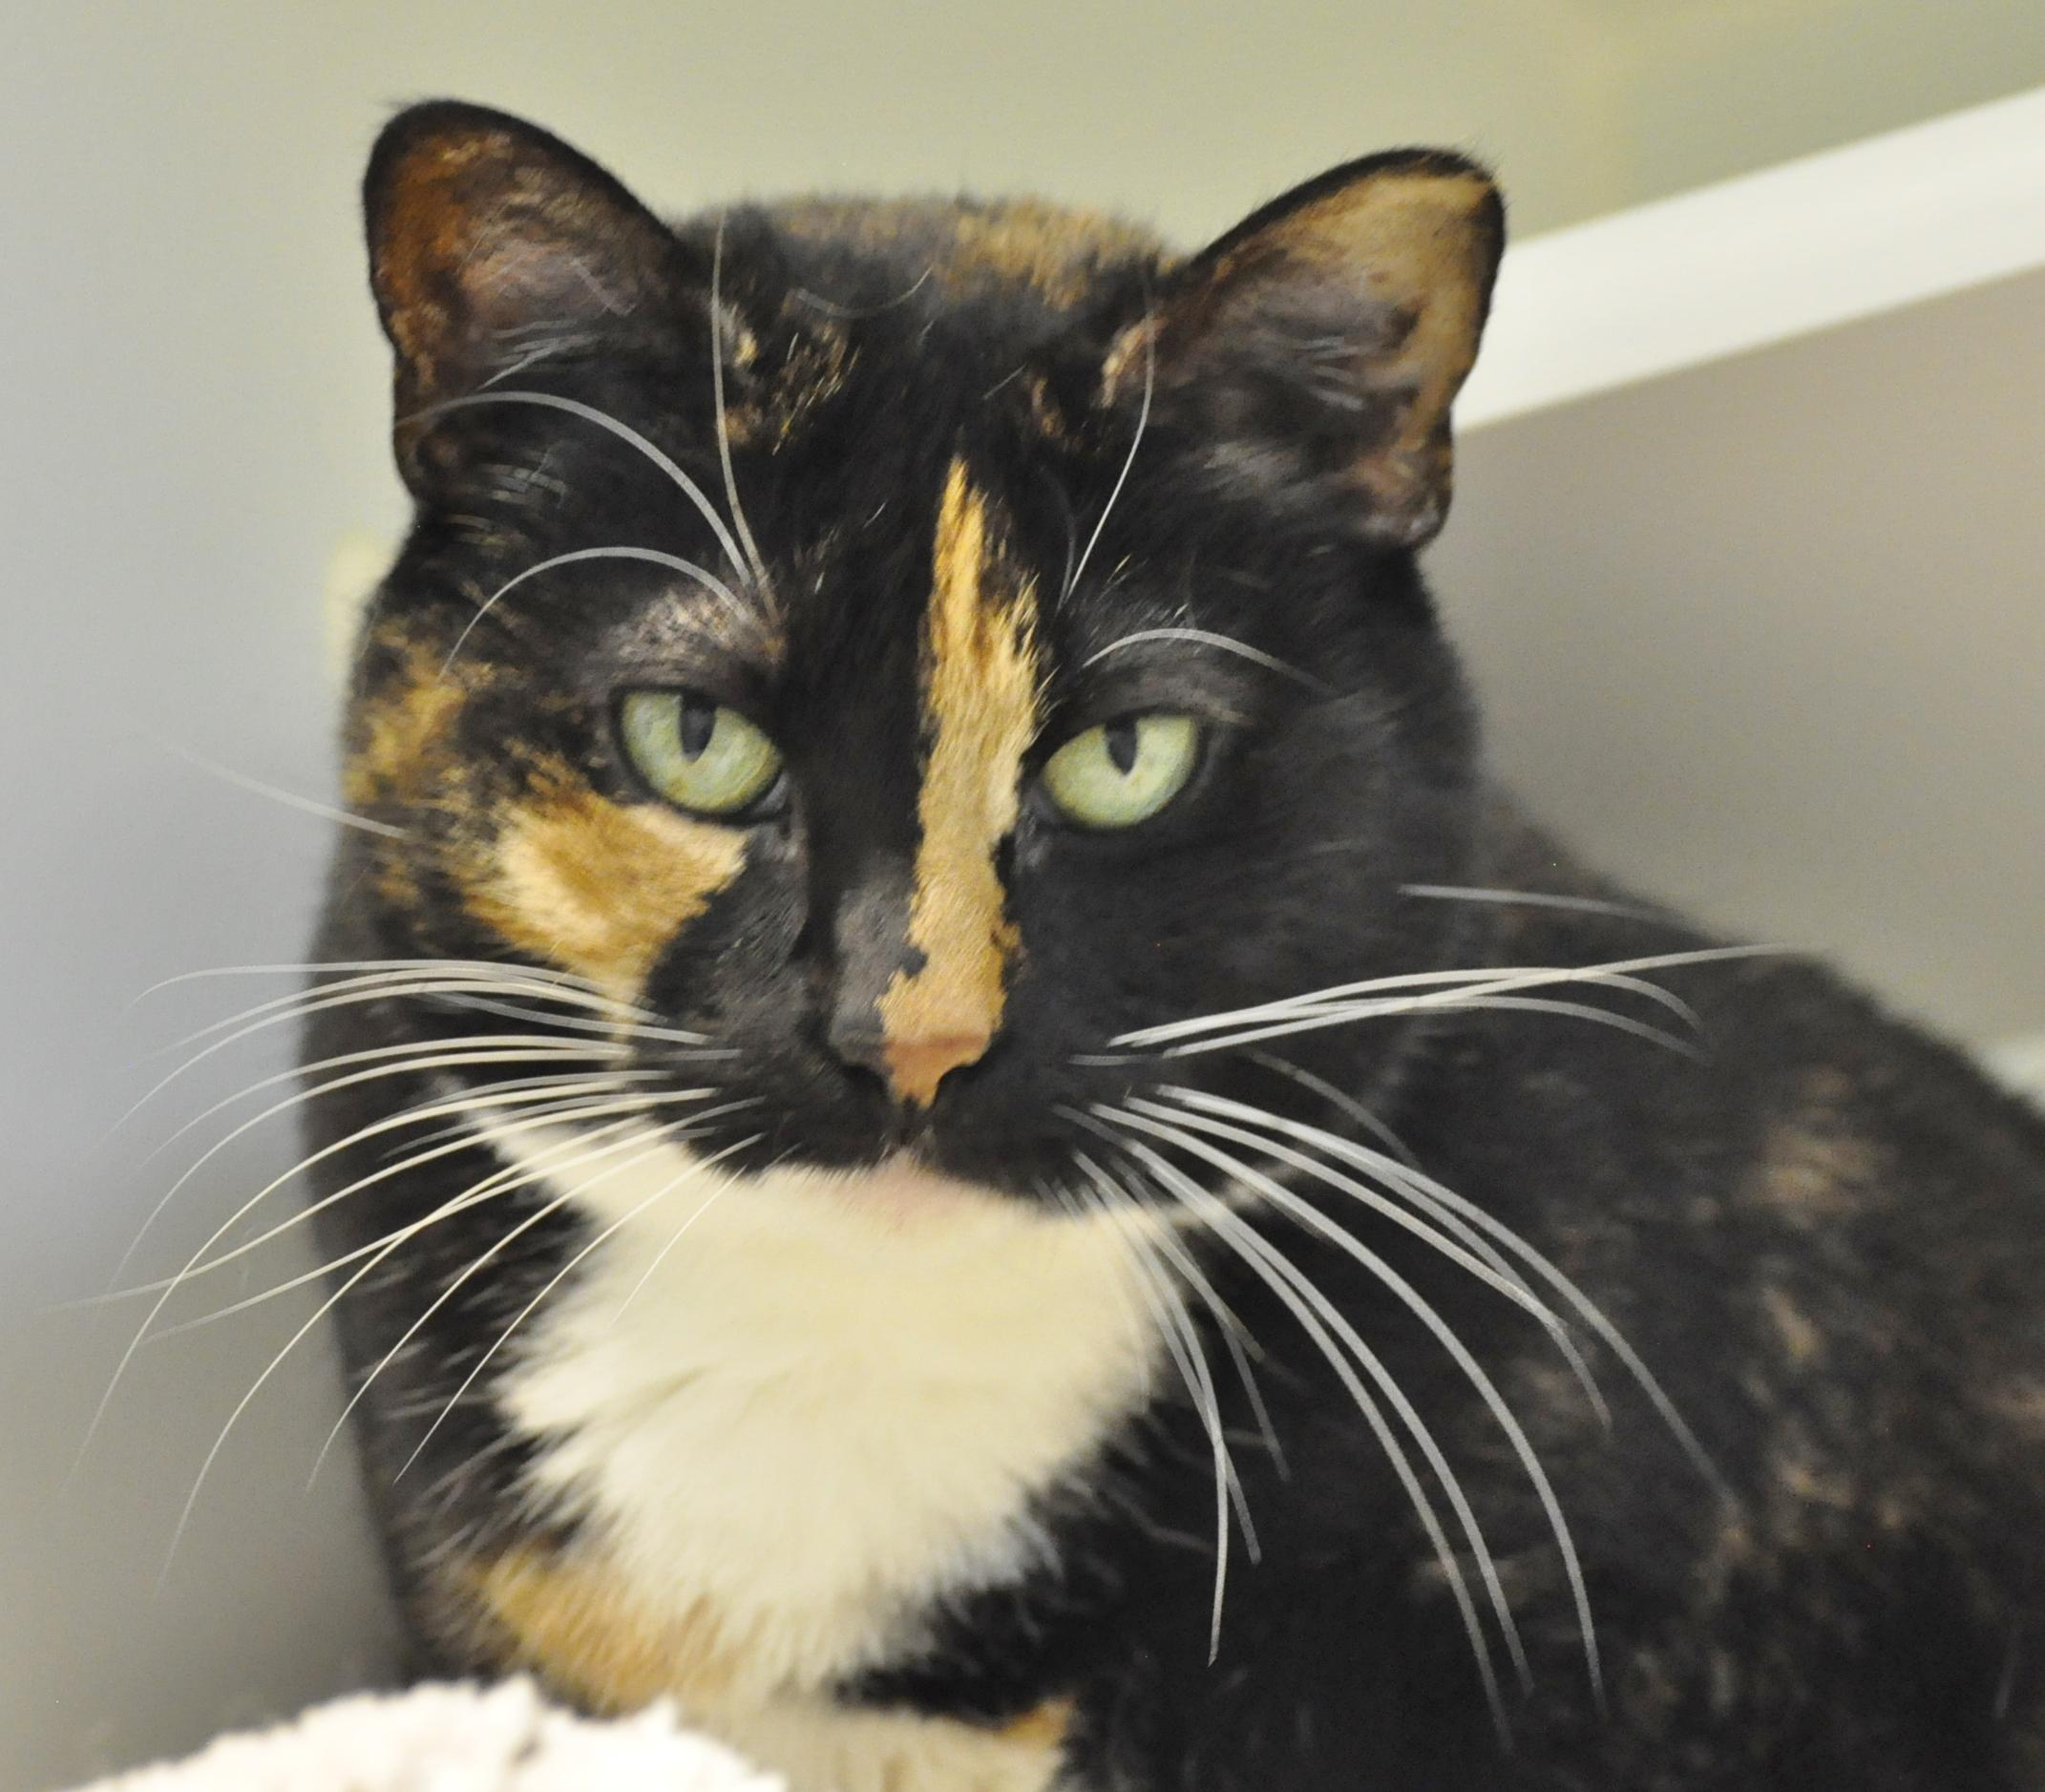 Friendly and stunning, my name is Madison. I'm a five year old tortoiseshell lady in search of my special family! I'd do best with older kids so I have some time to settle in. I'm a charming soul with a big heart to share with you - visit soon!